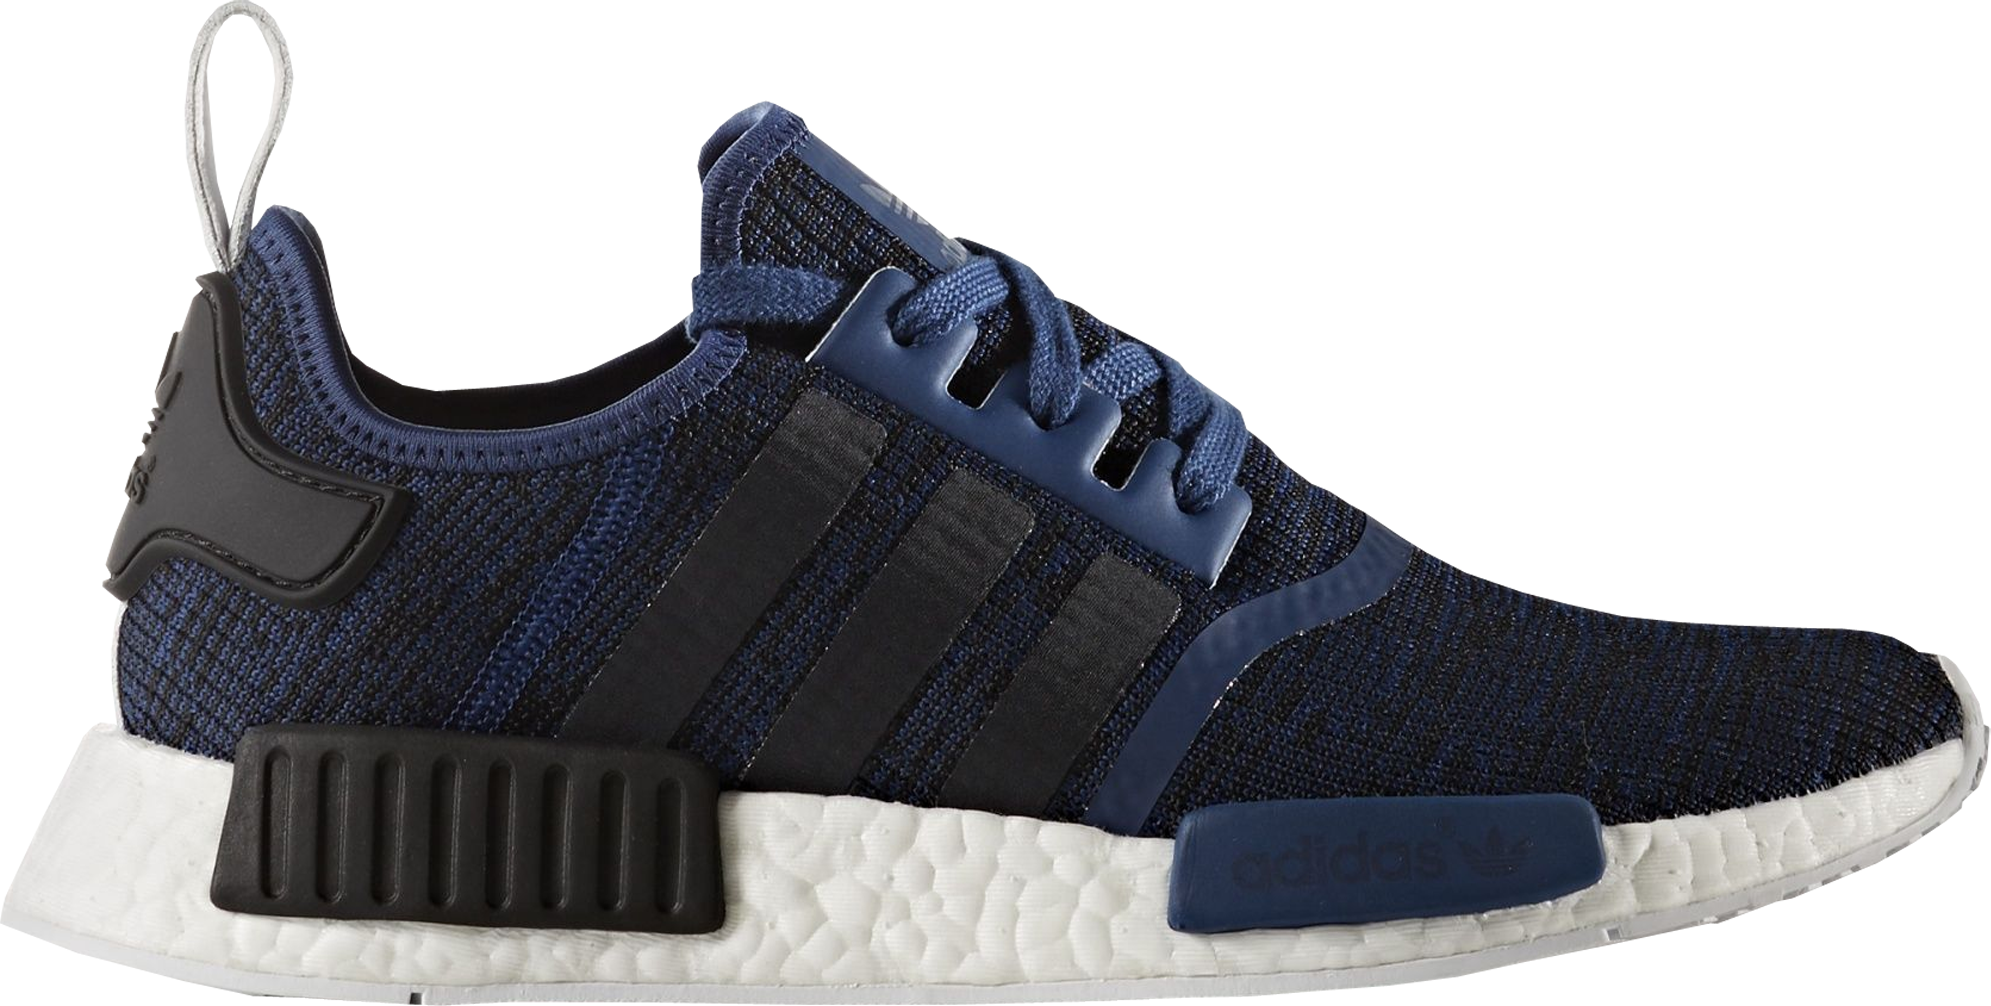 check out 606d3 bee42 norway adidas nmd r1 mystery blue 12f25 527e2